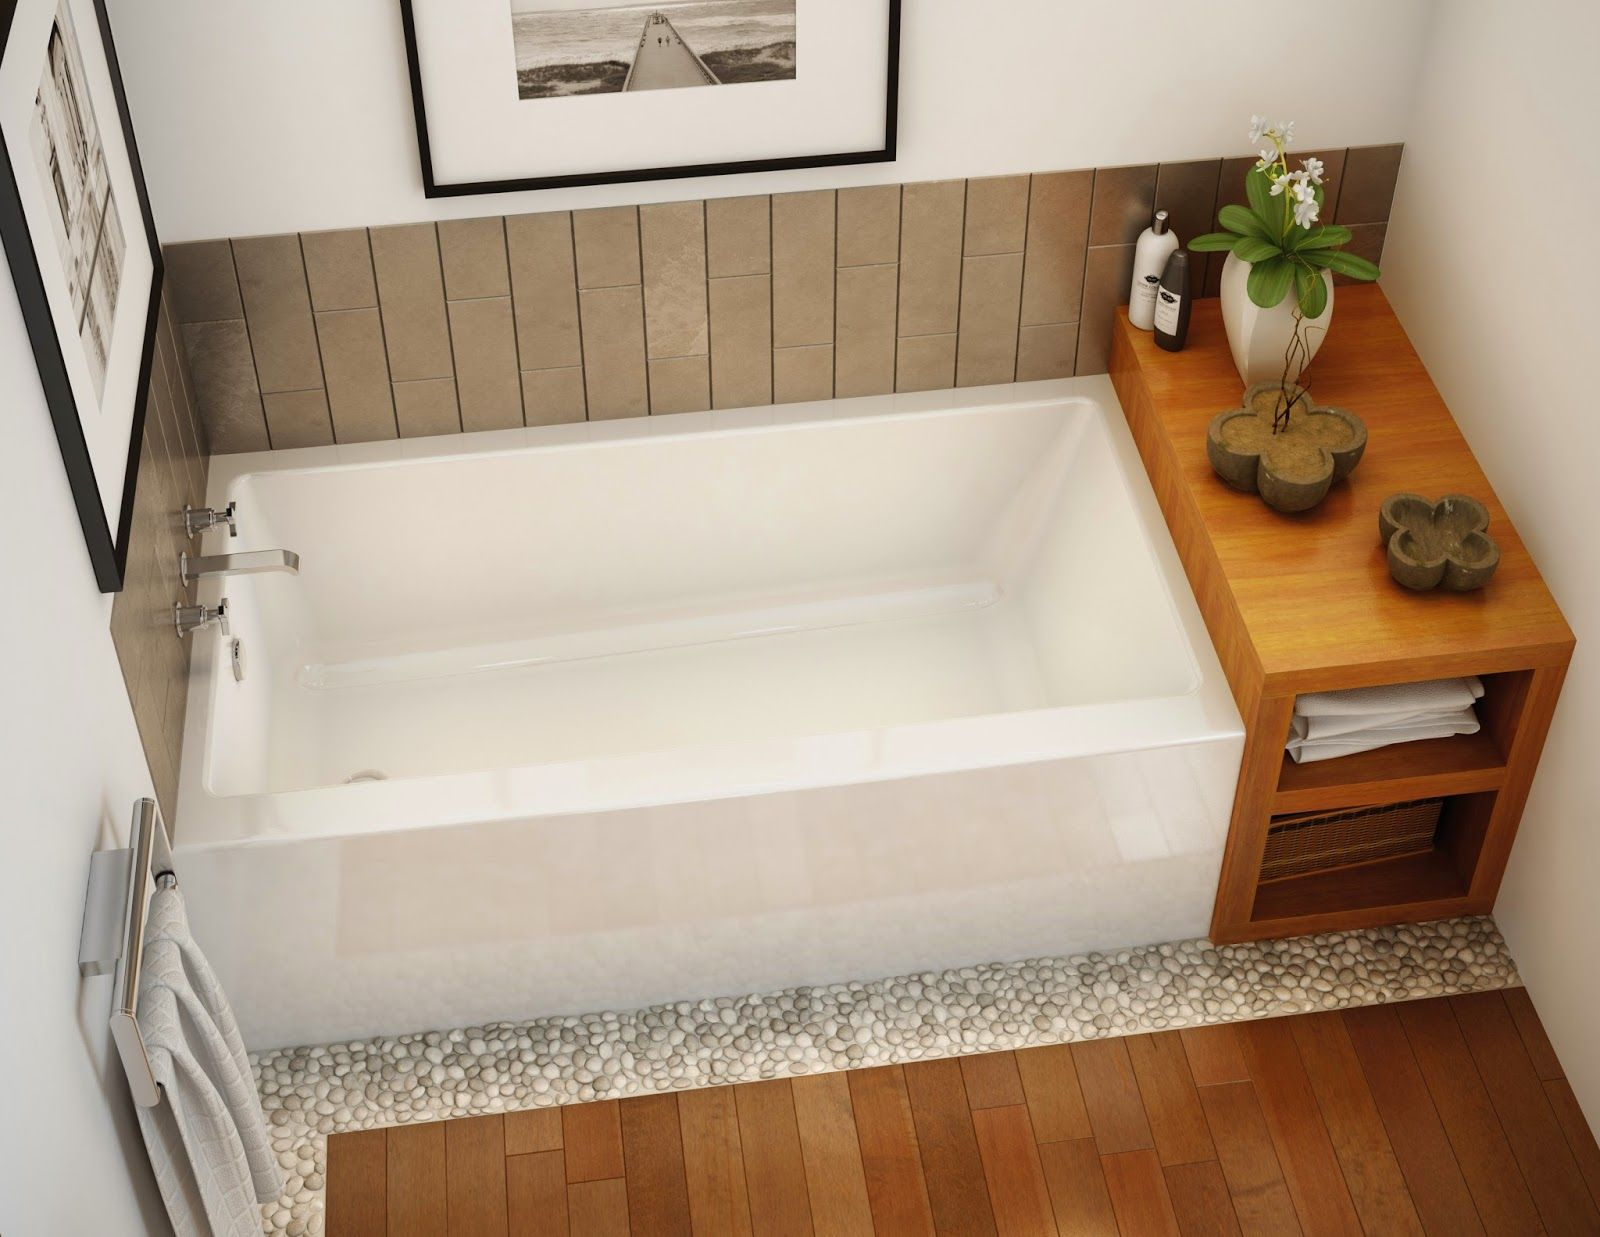 how toto vintage refinishing paint kitchen peeling sink comfort tubs enamel depot porcelain home and iron bath kohler tub diy with to warmth refinish shower design cast a bathtub